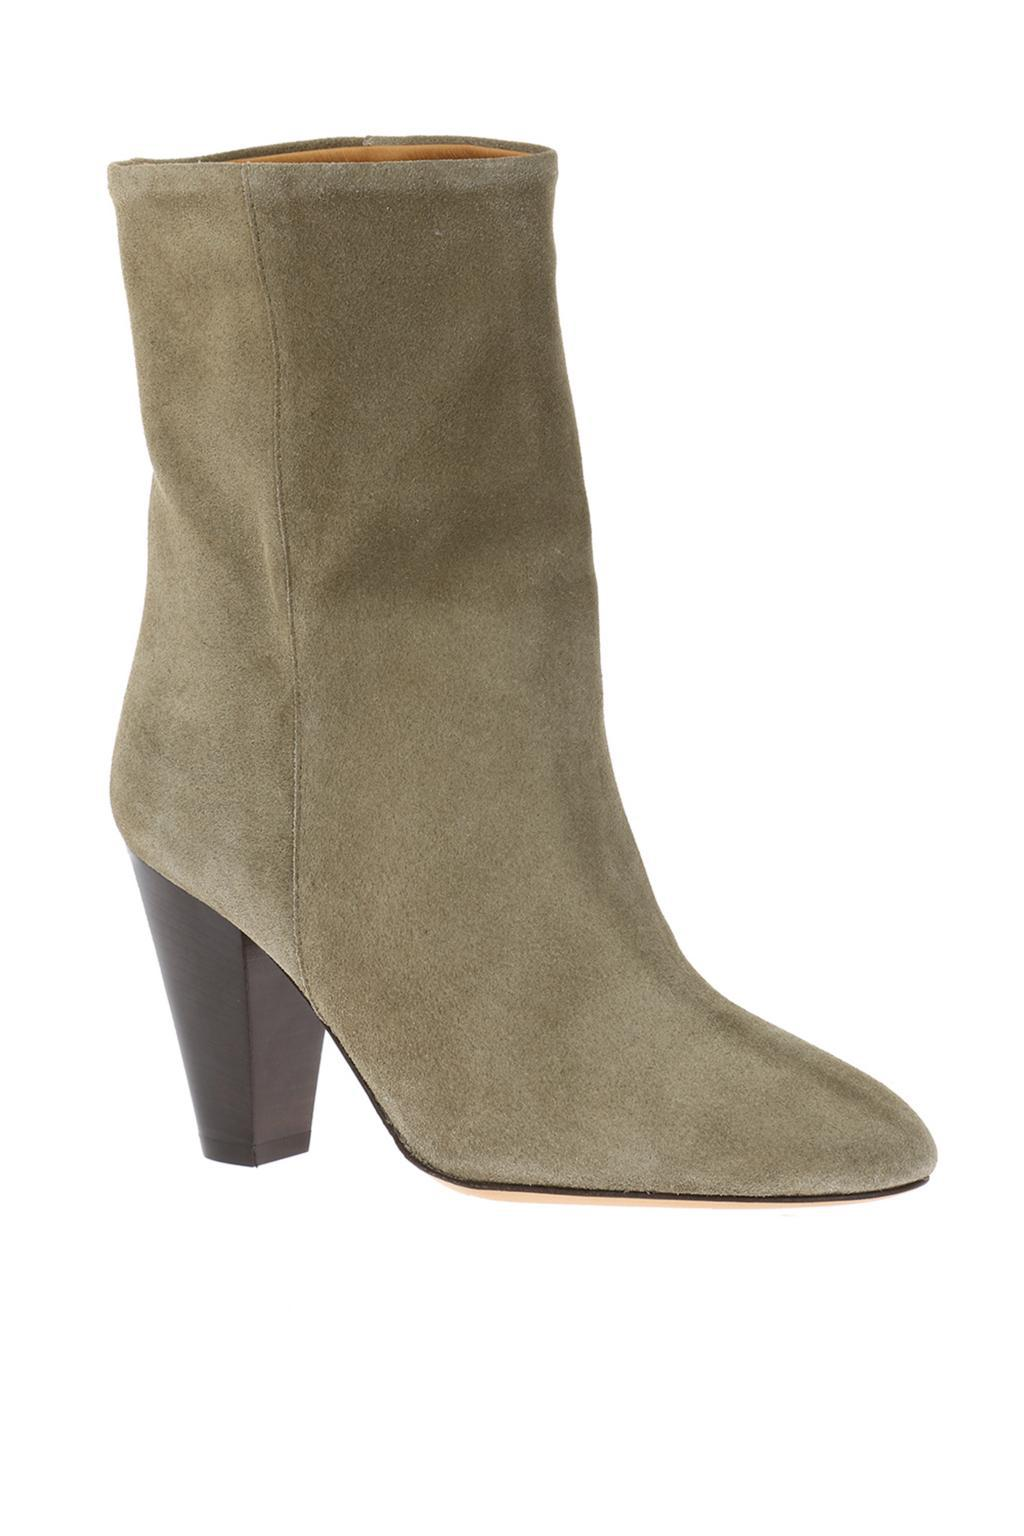 Étoile Isabel Marant Suede 'darilay' Heeled Ankle Boots in Grey (Grey)